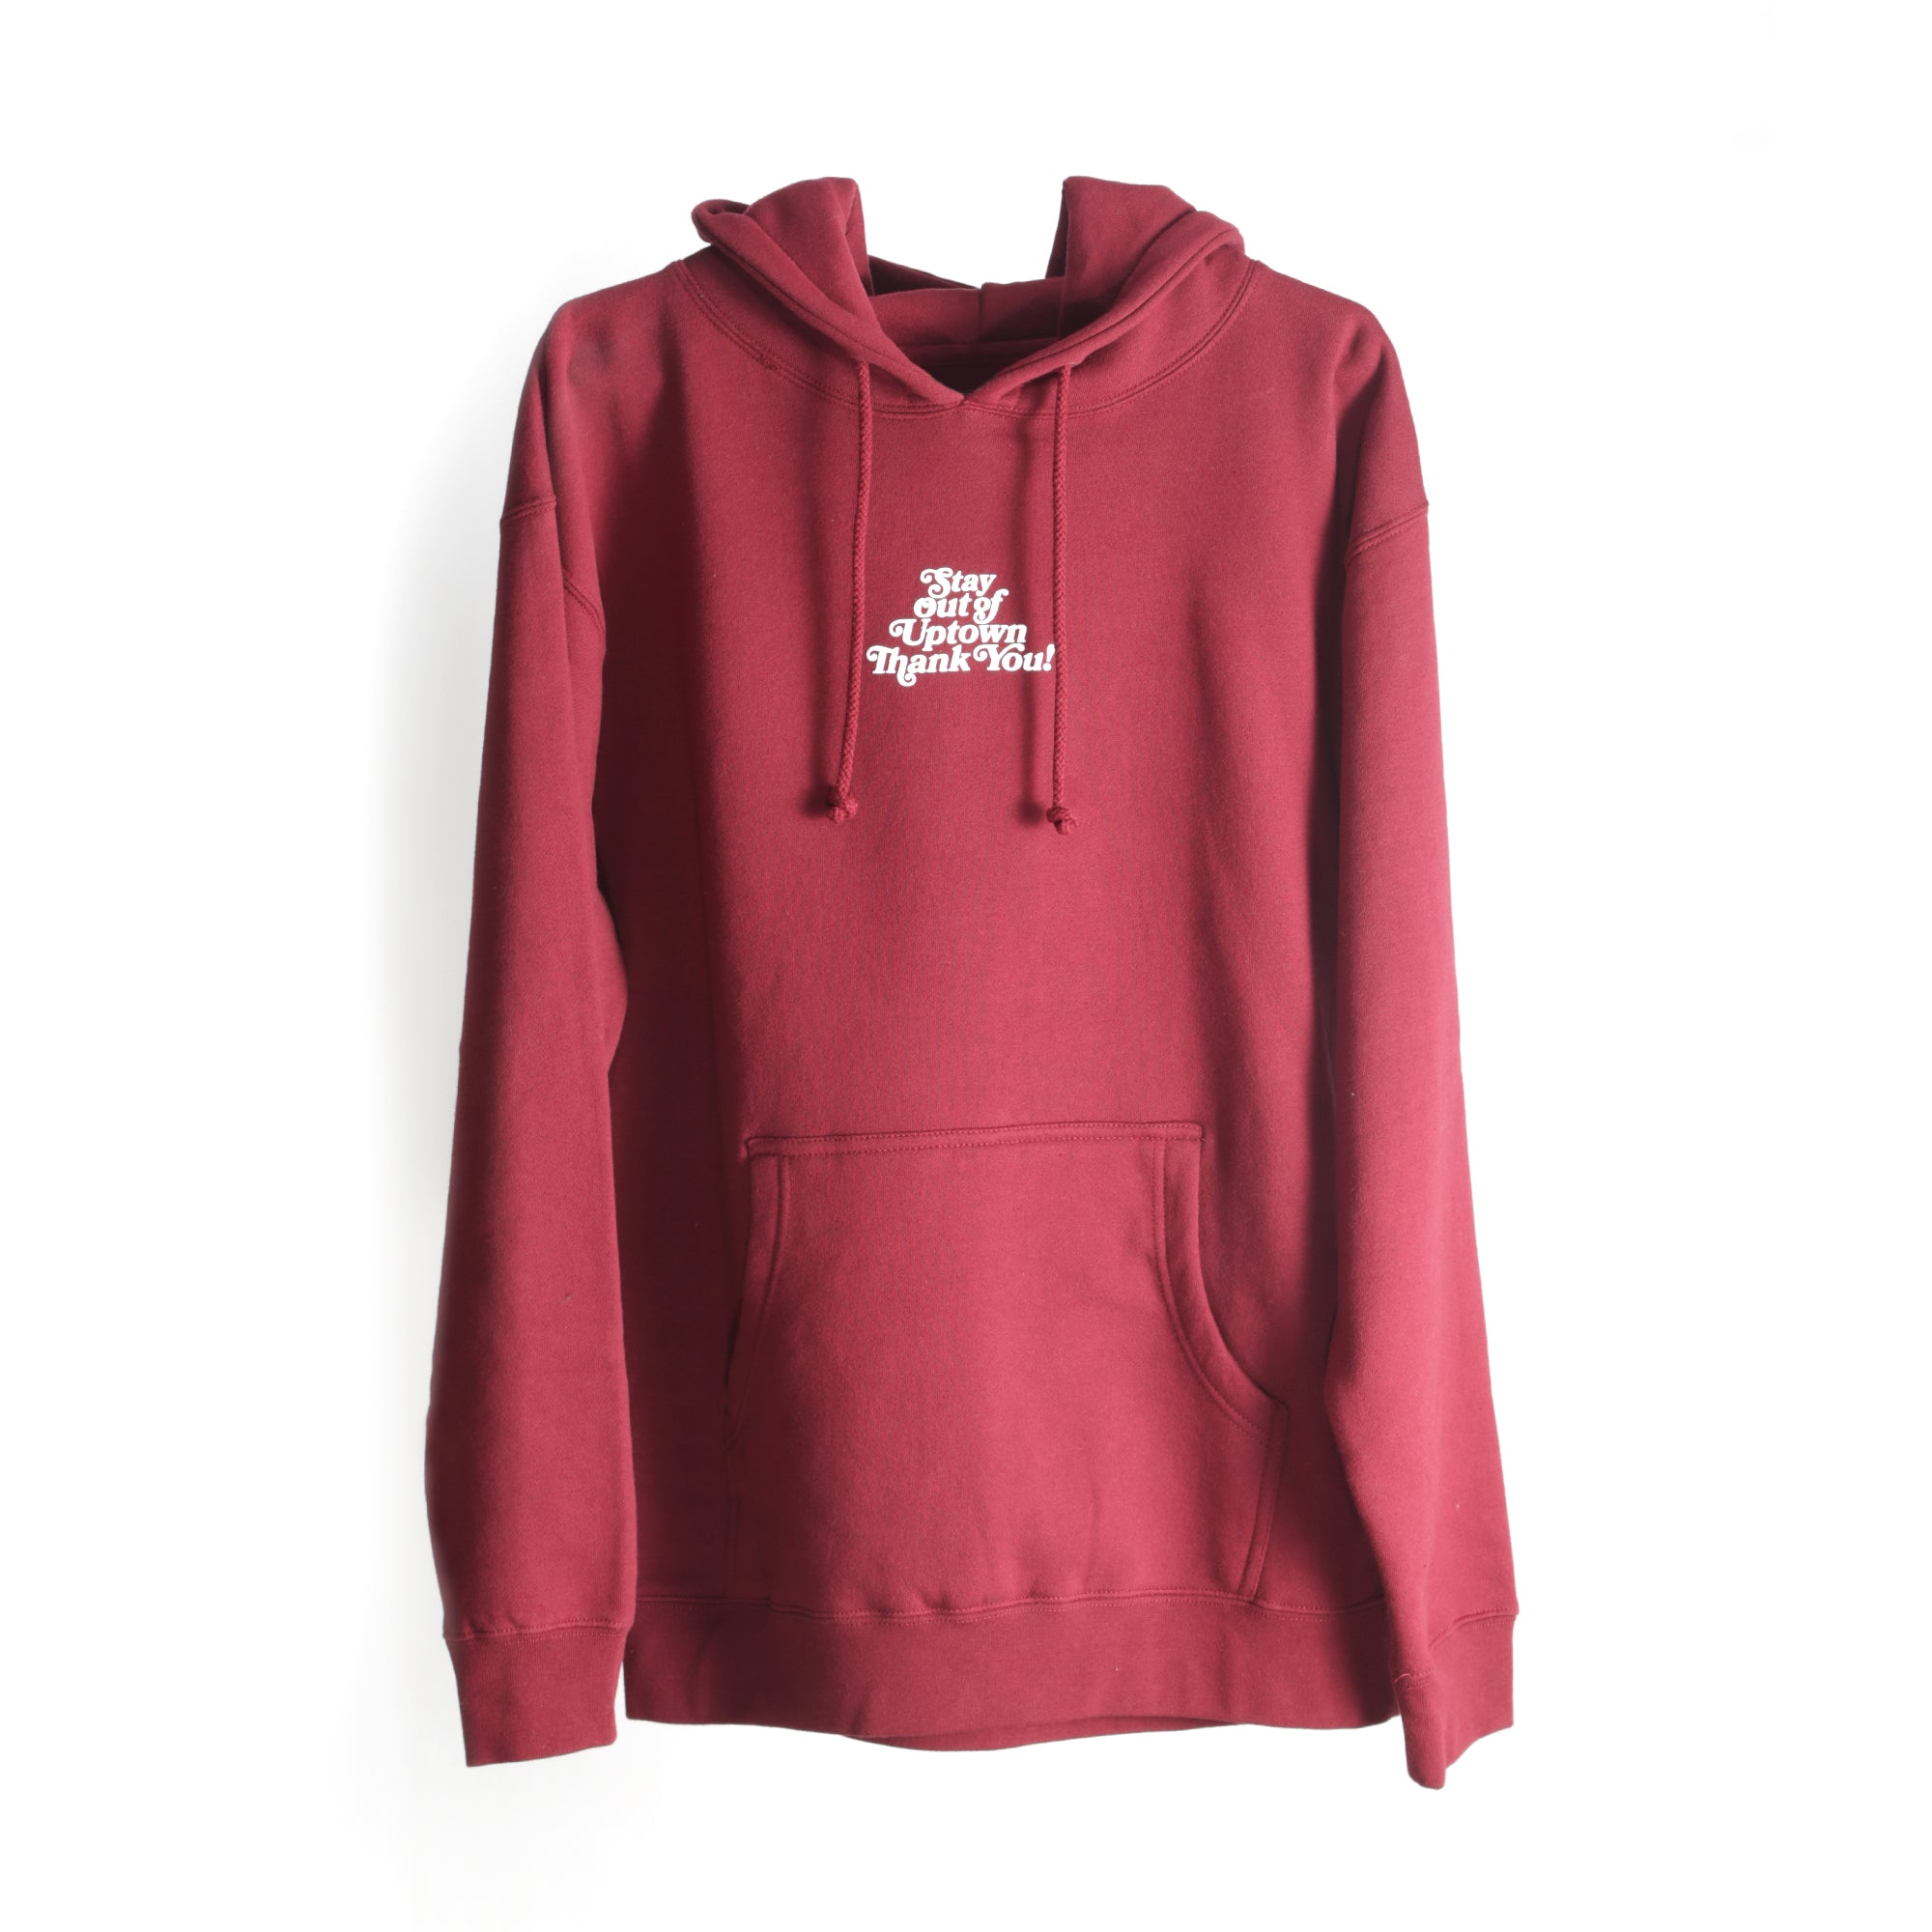 Stay Out of Uptown Hoodie - Maroon